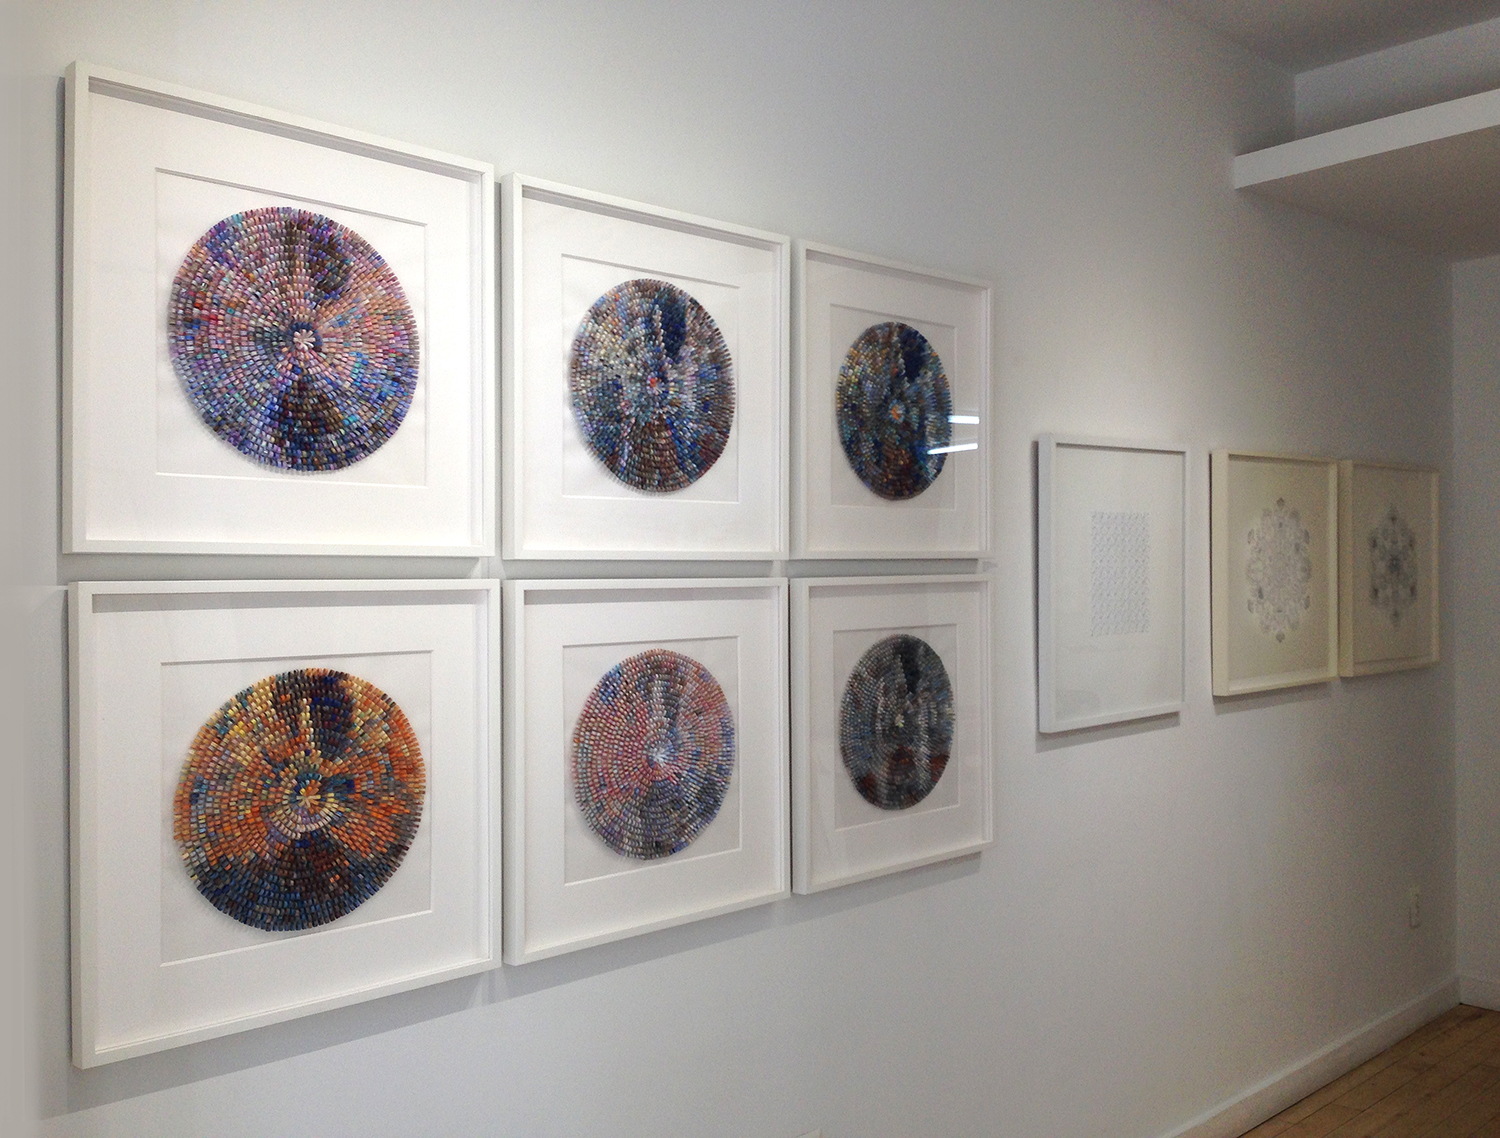 Shredded Impression Series on view at Muriel Guépin Gallery, New York.